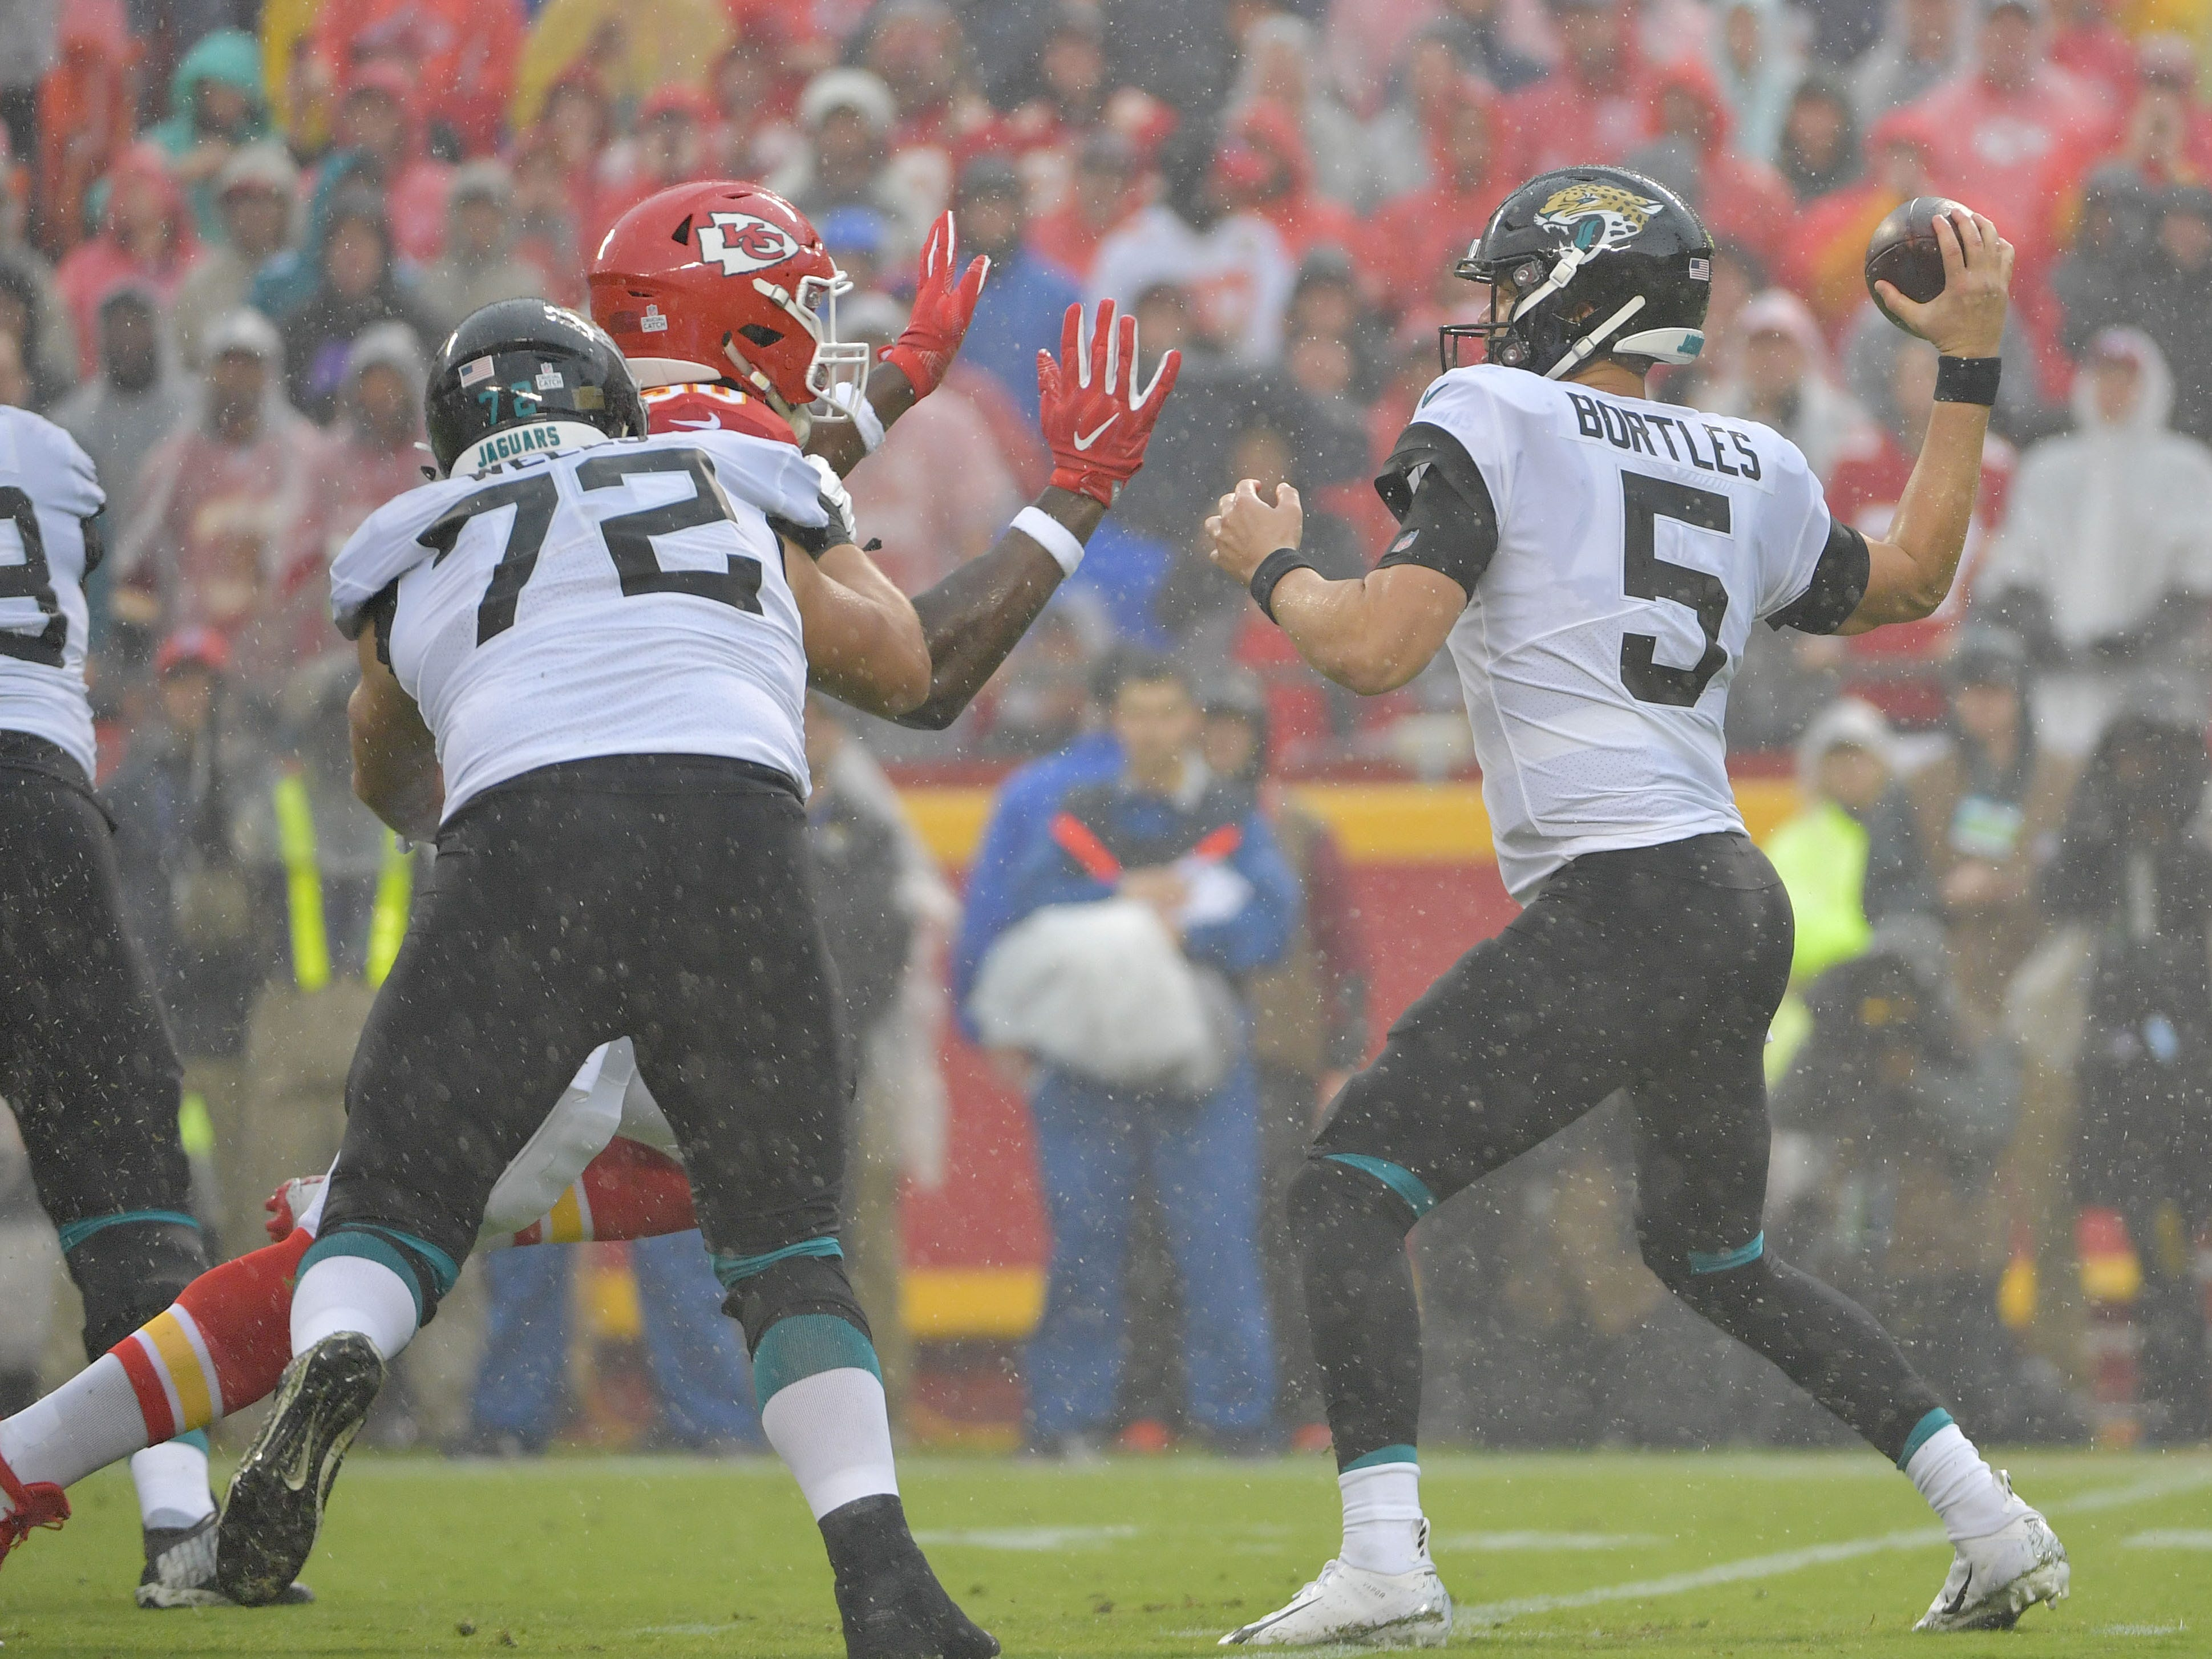 Week 5: Rain falls early in the Kansas City Chiefs' 30-14 win over the Jacksonville Jaguars at Arrowhead Stadium.